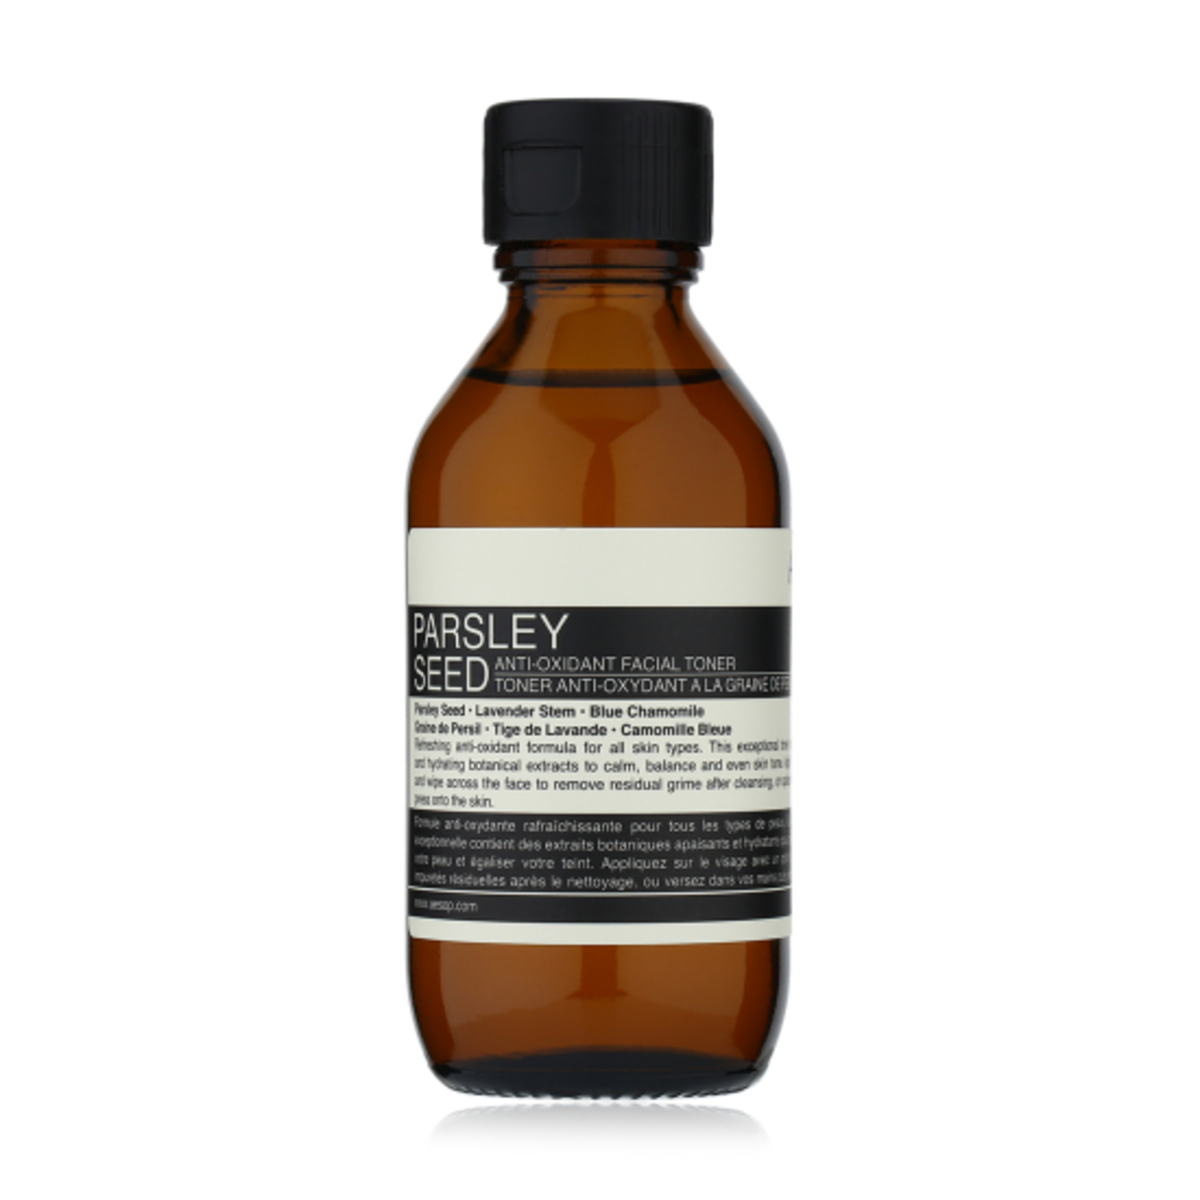 Parsley Seed Anti-Oxidant Facial Toner 100ml [Parallel Import Product]